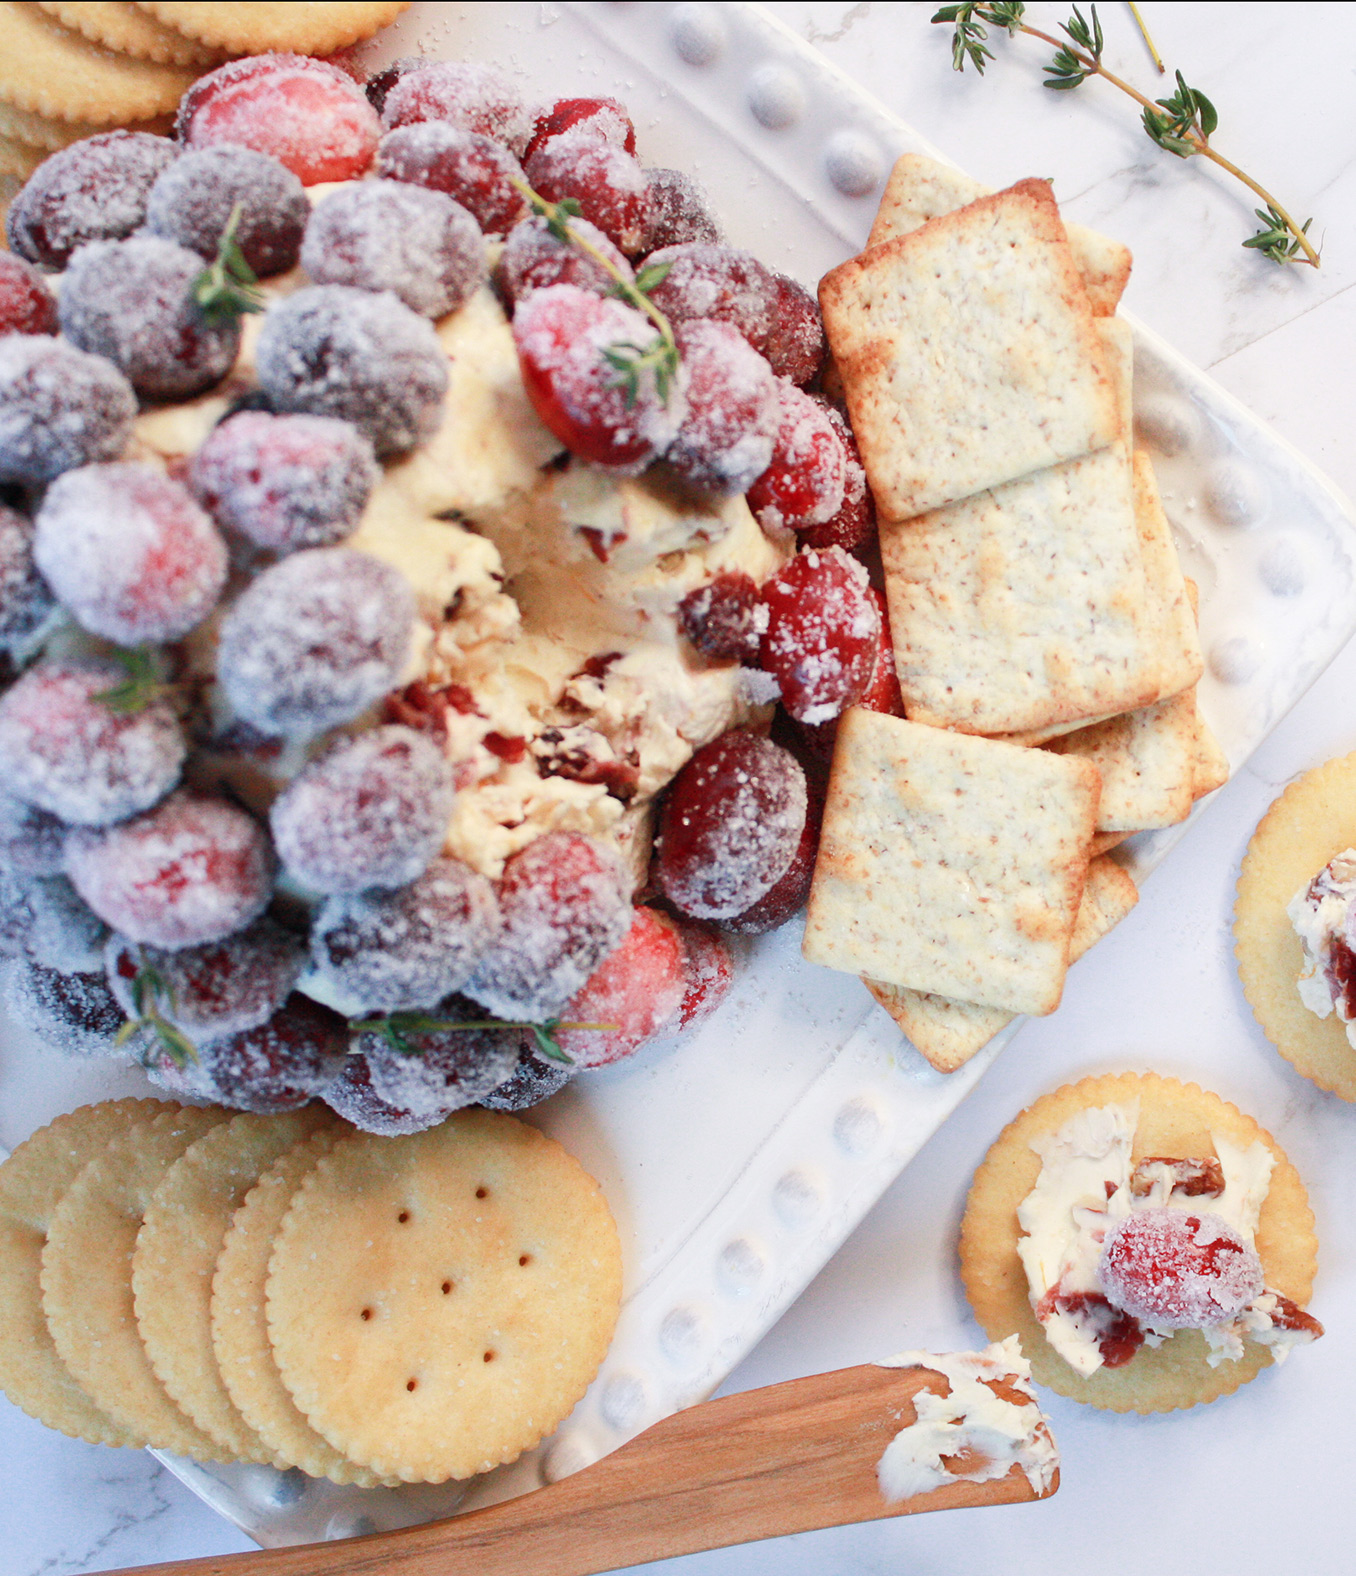 Cranberry-Orange Cheese Ball with Candied Pecans and Sugared Cranberries